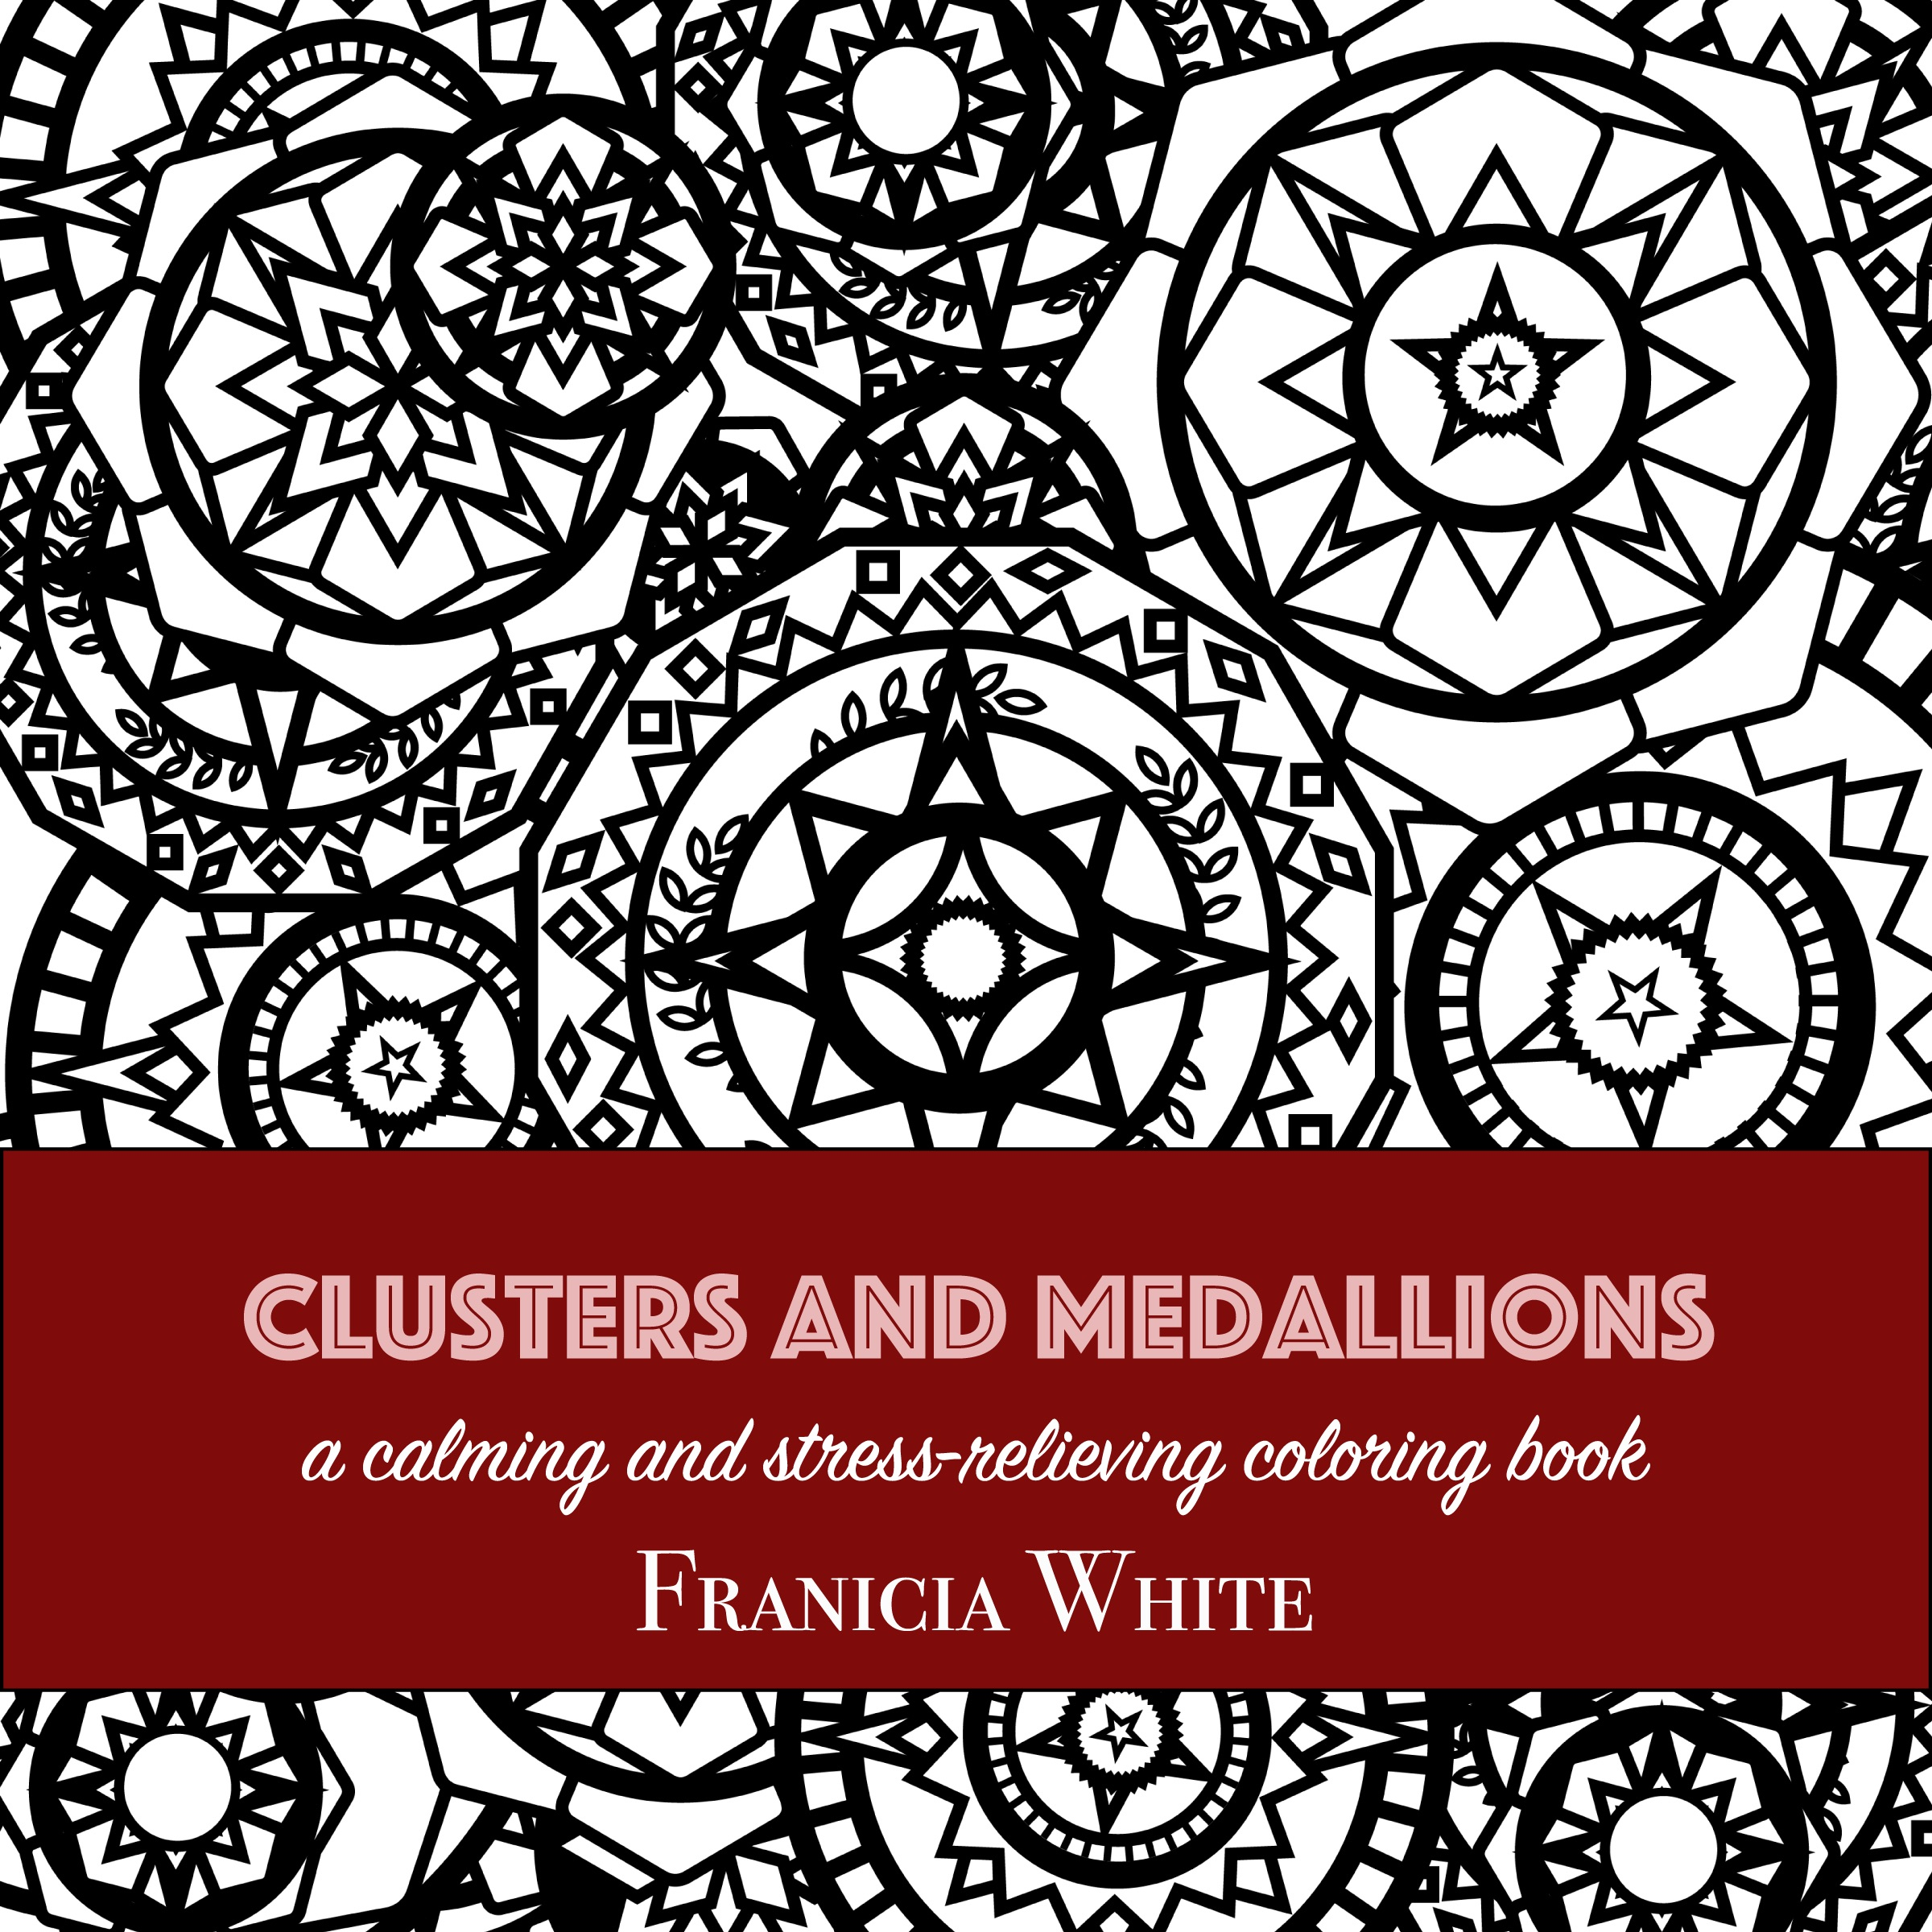 Book Cover - Clusters and Medallions final copy-01.jpg